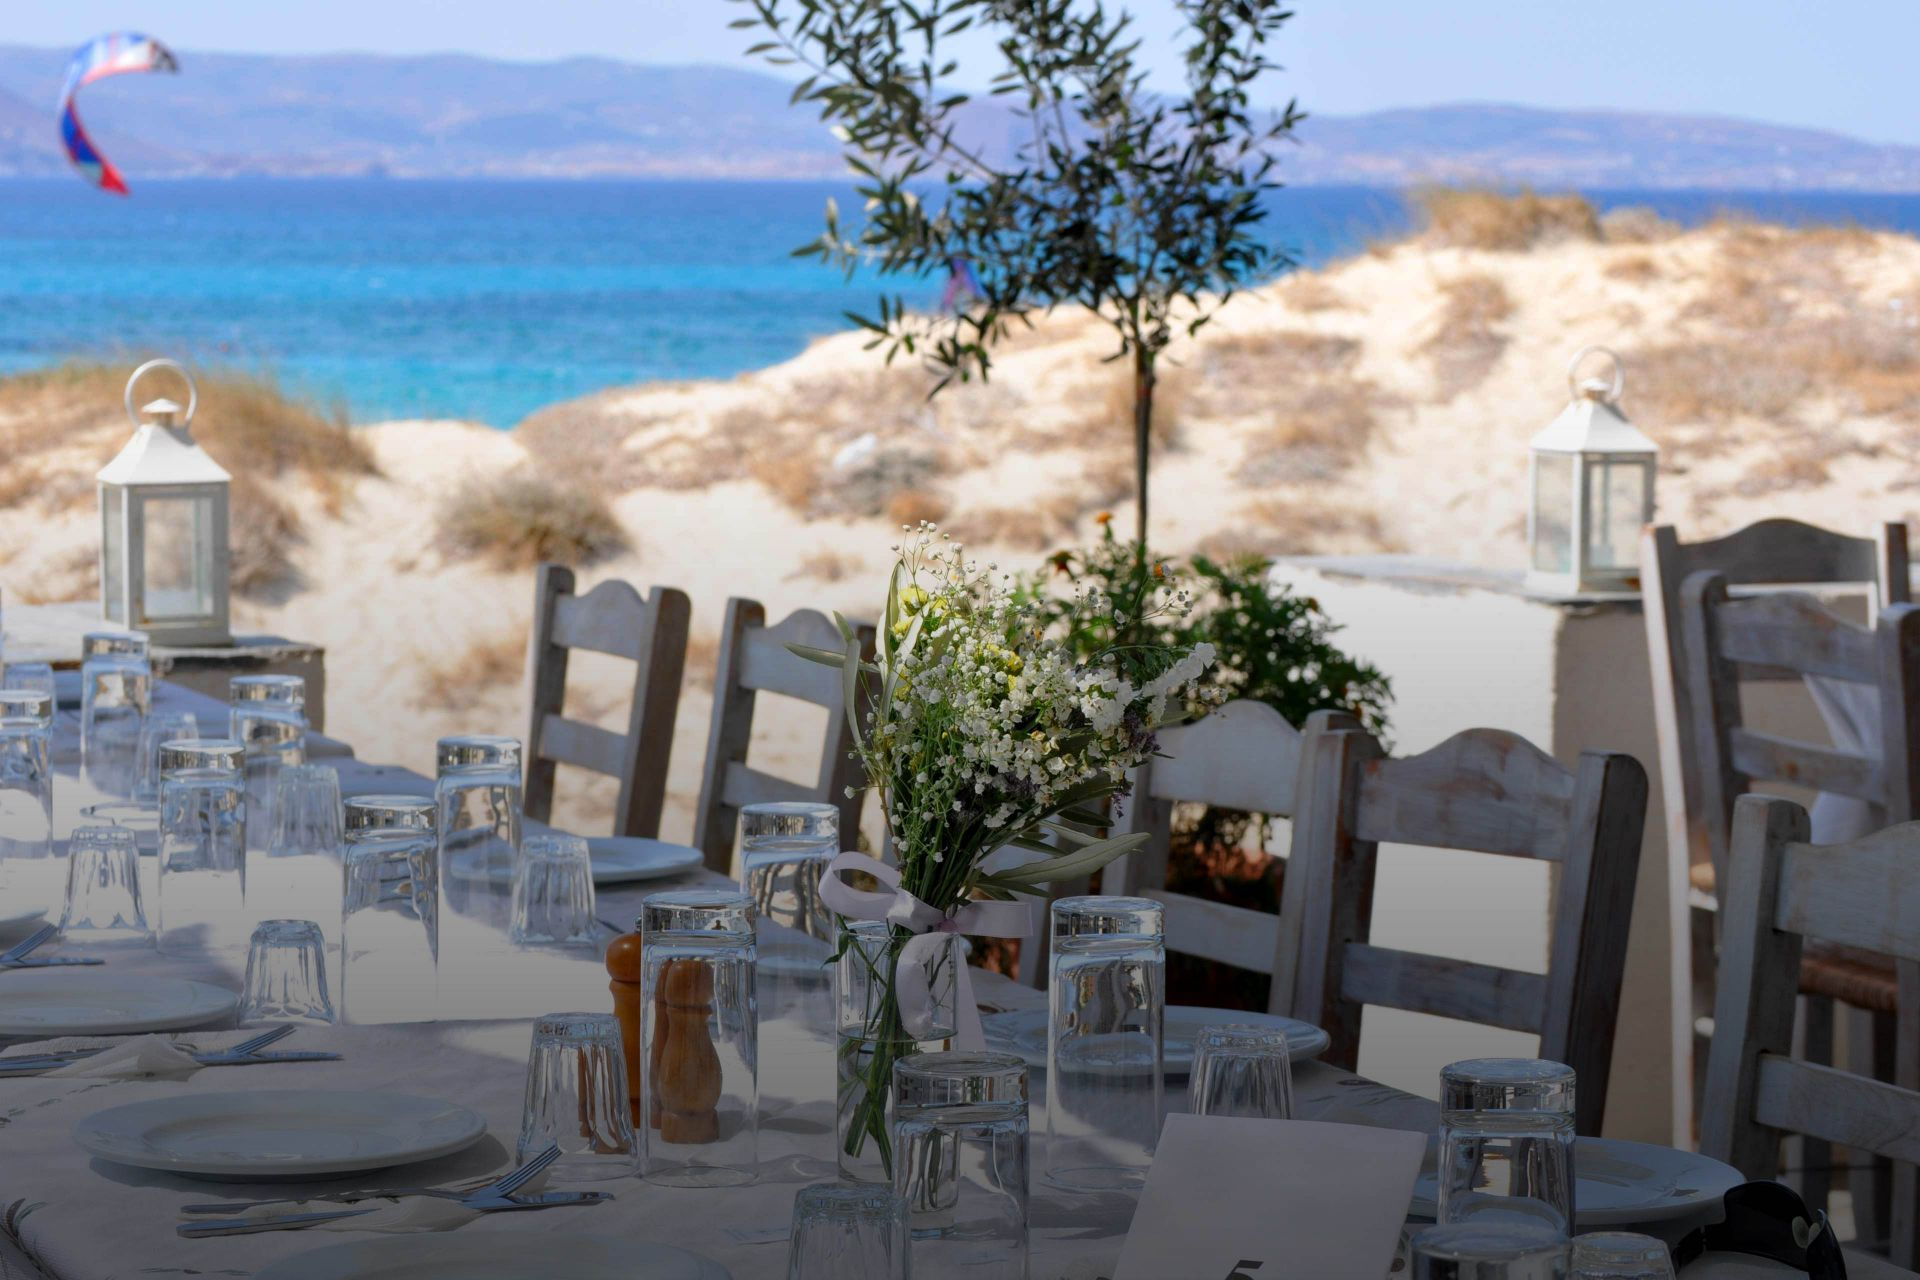 Places to eat and drink in Naxos